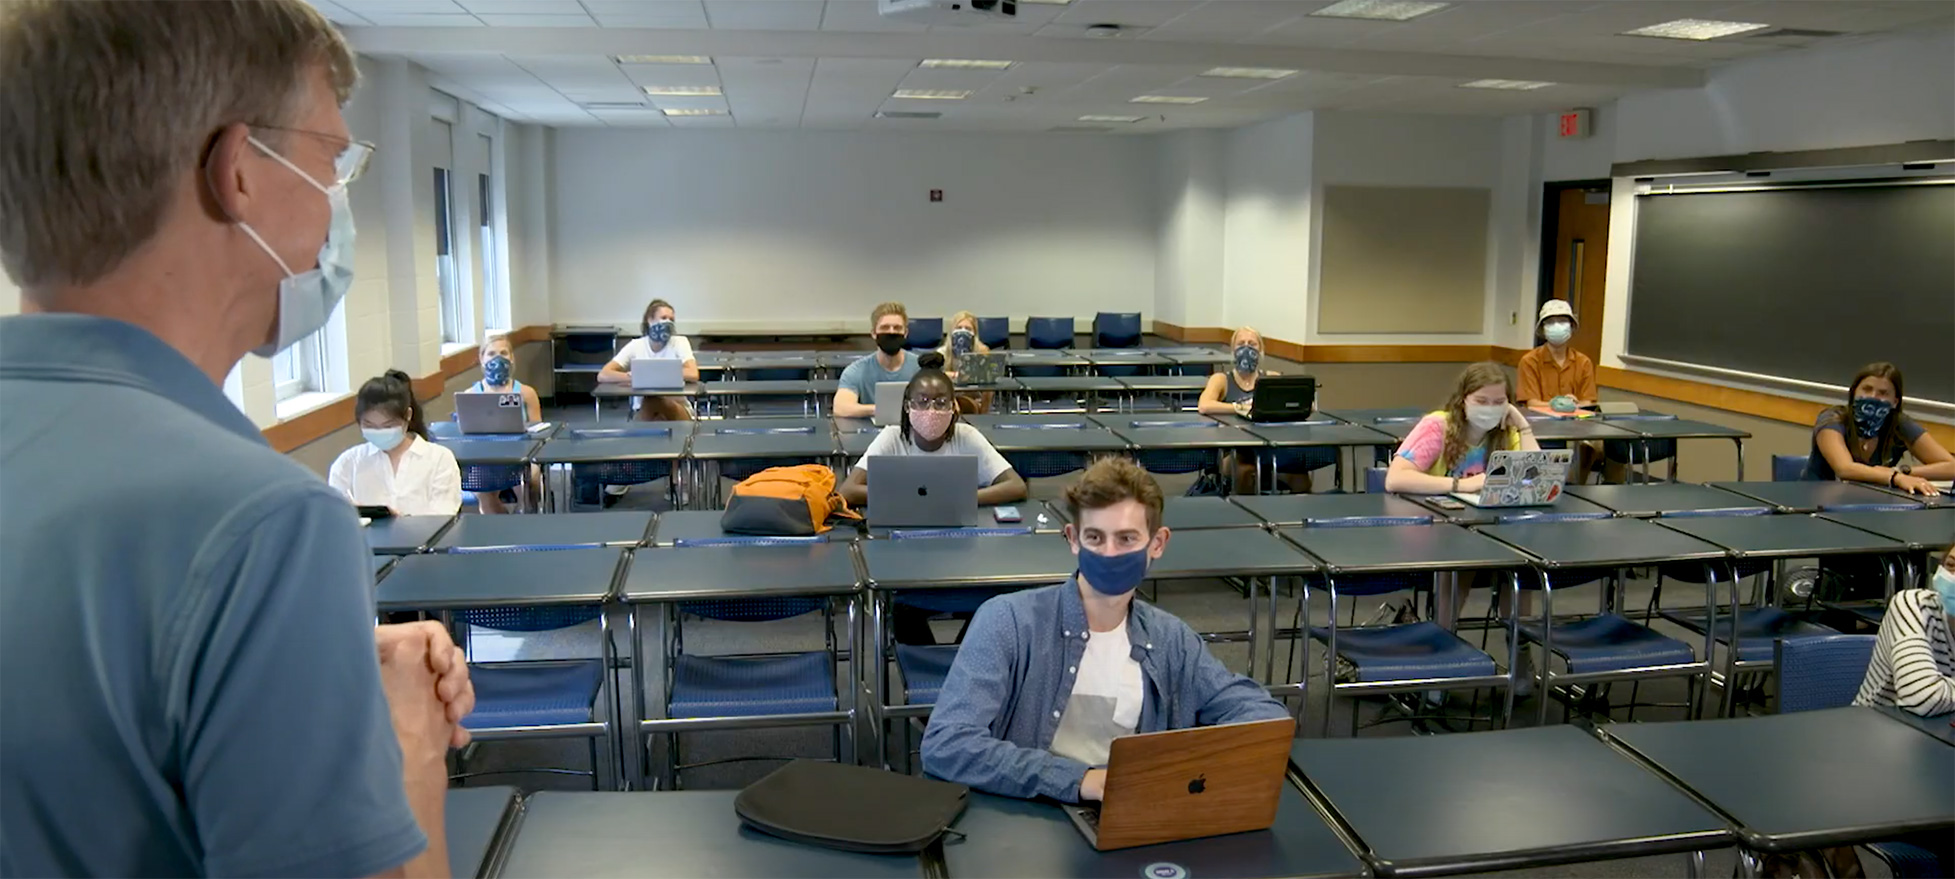 Instructor and students wearing masks in classroom